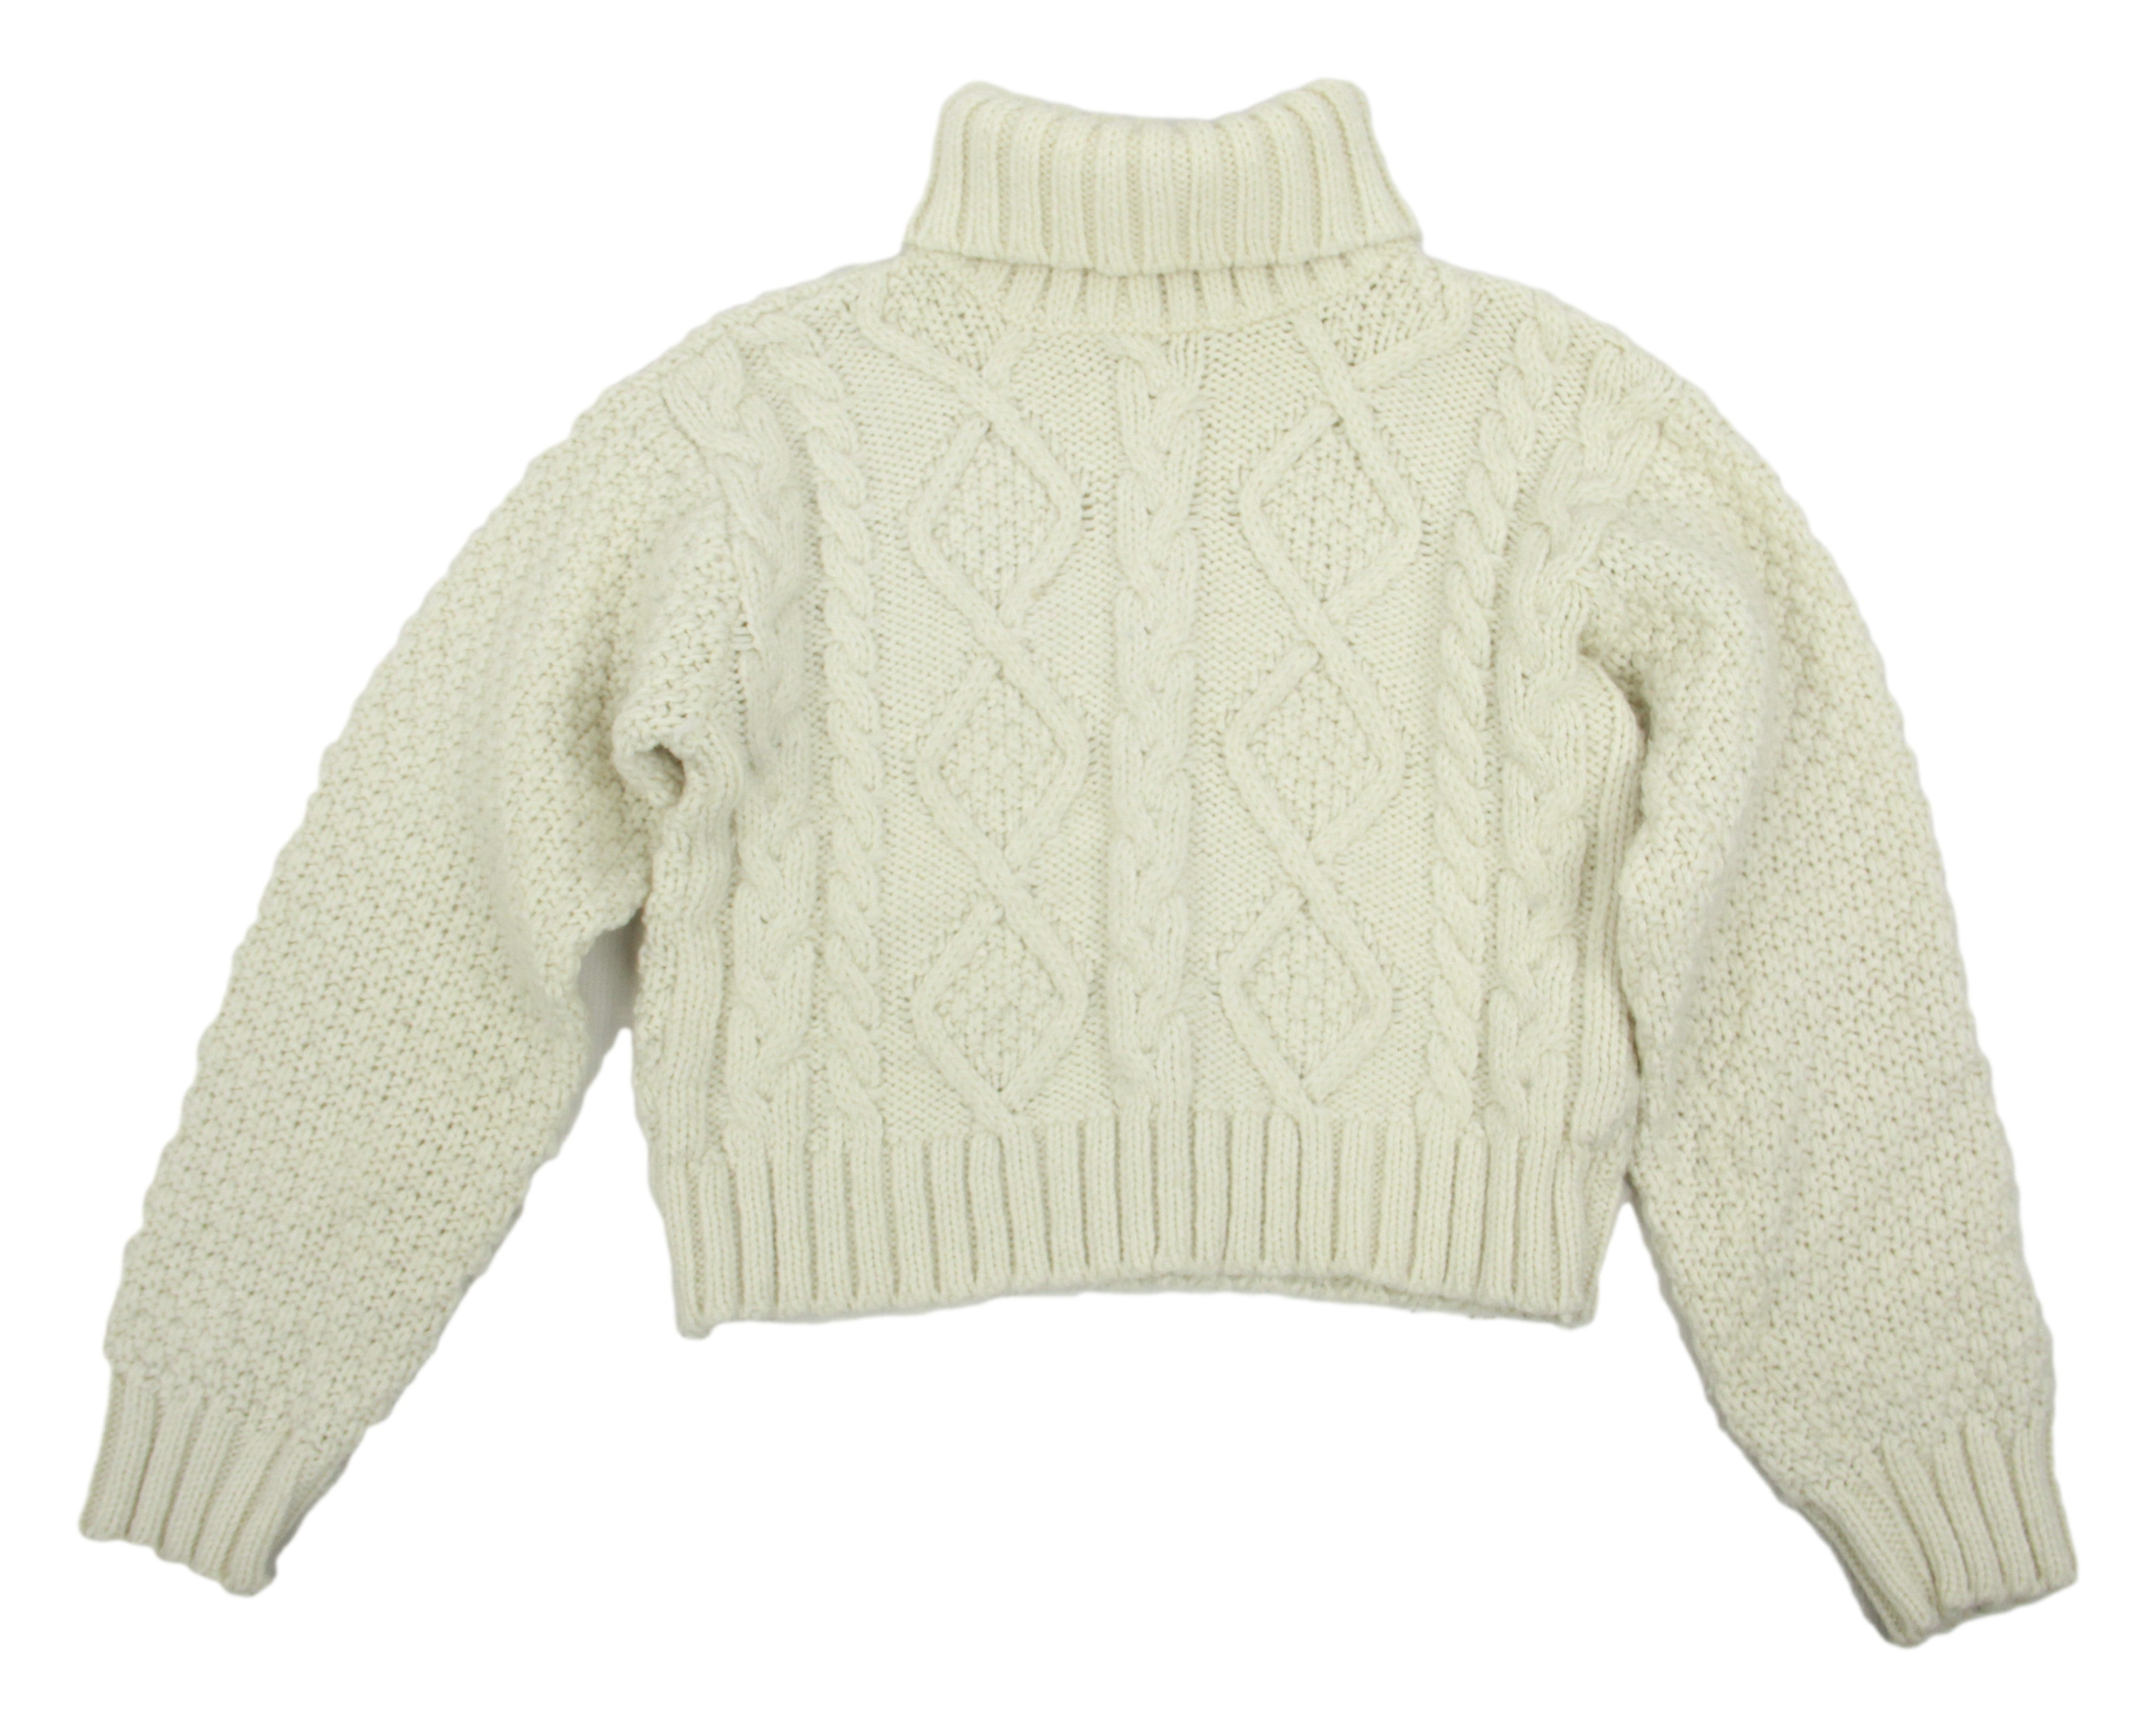 Cable Knit Wool Blend Aran Style Roll Neck Woman's Sweater, S